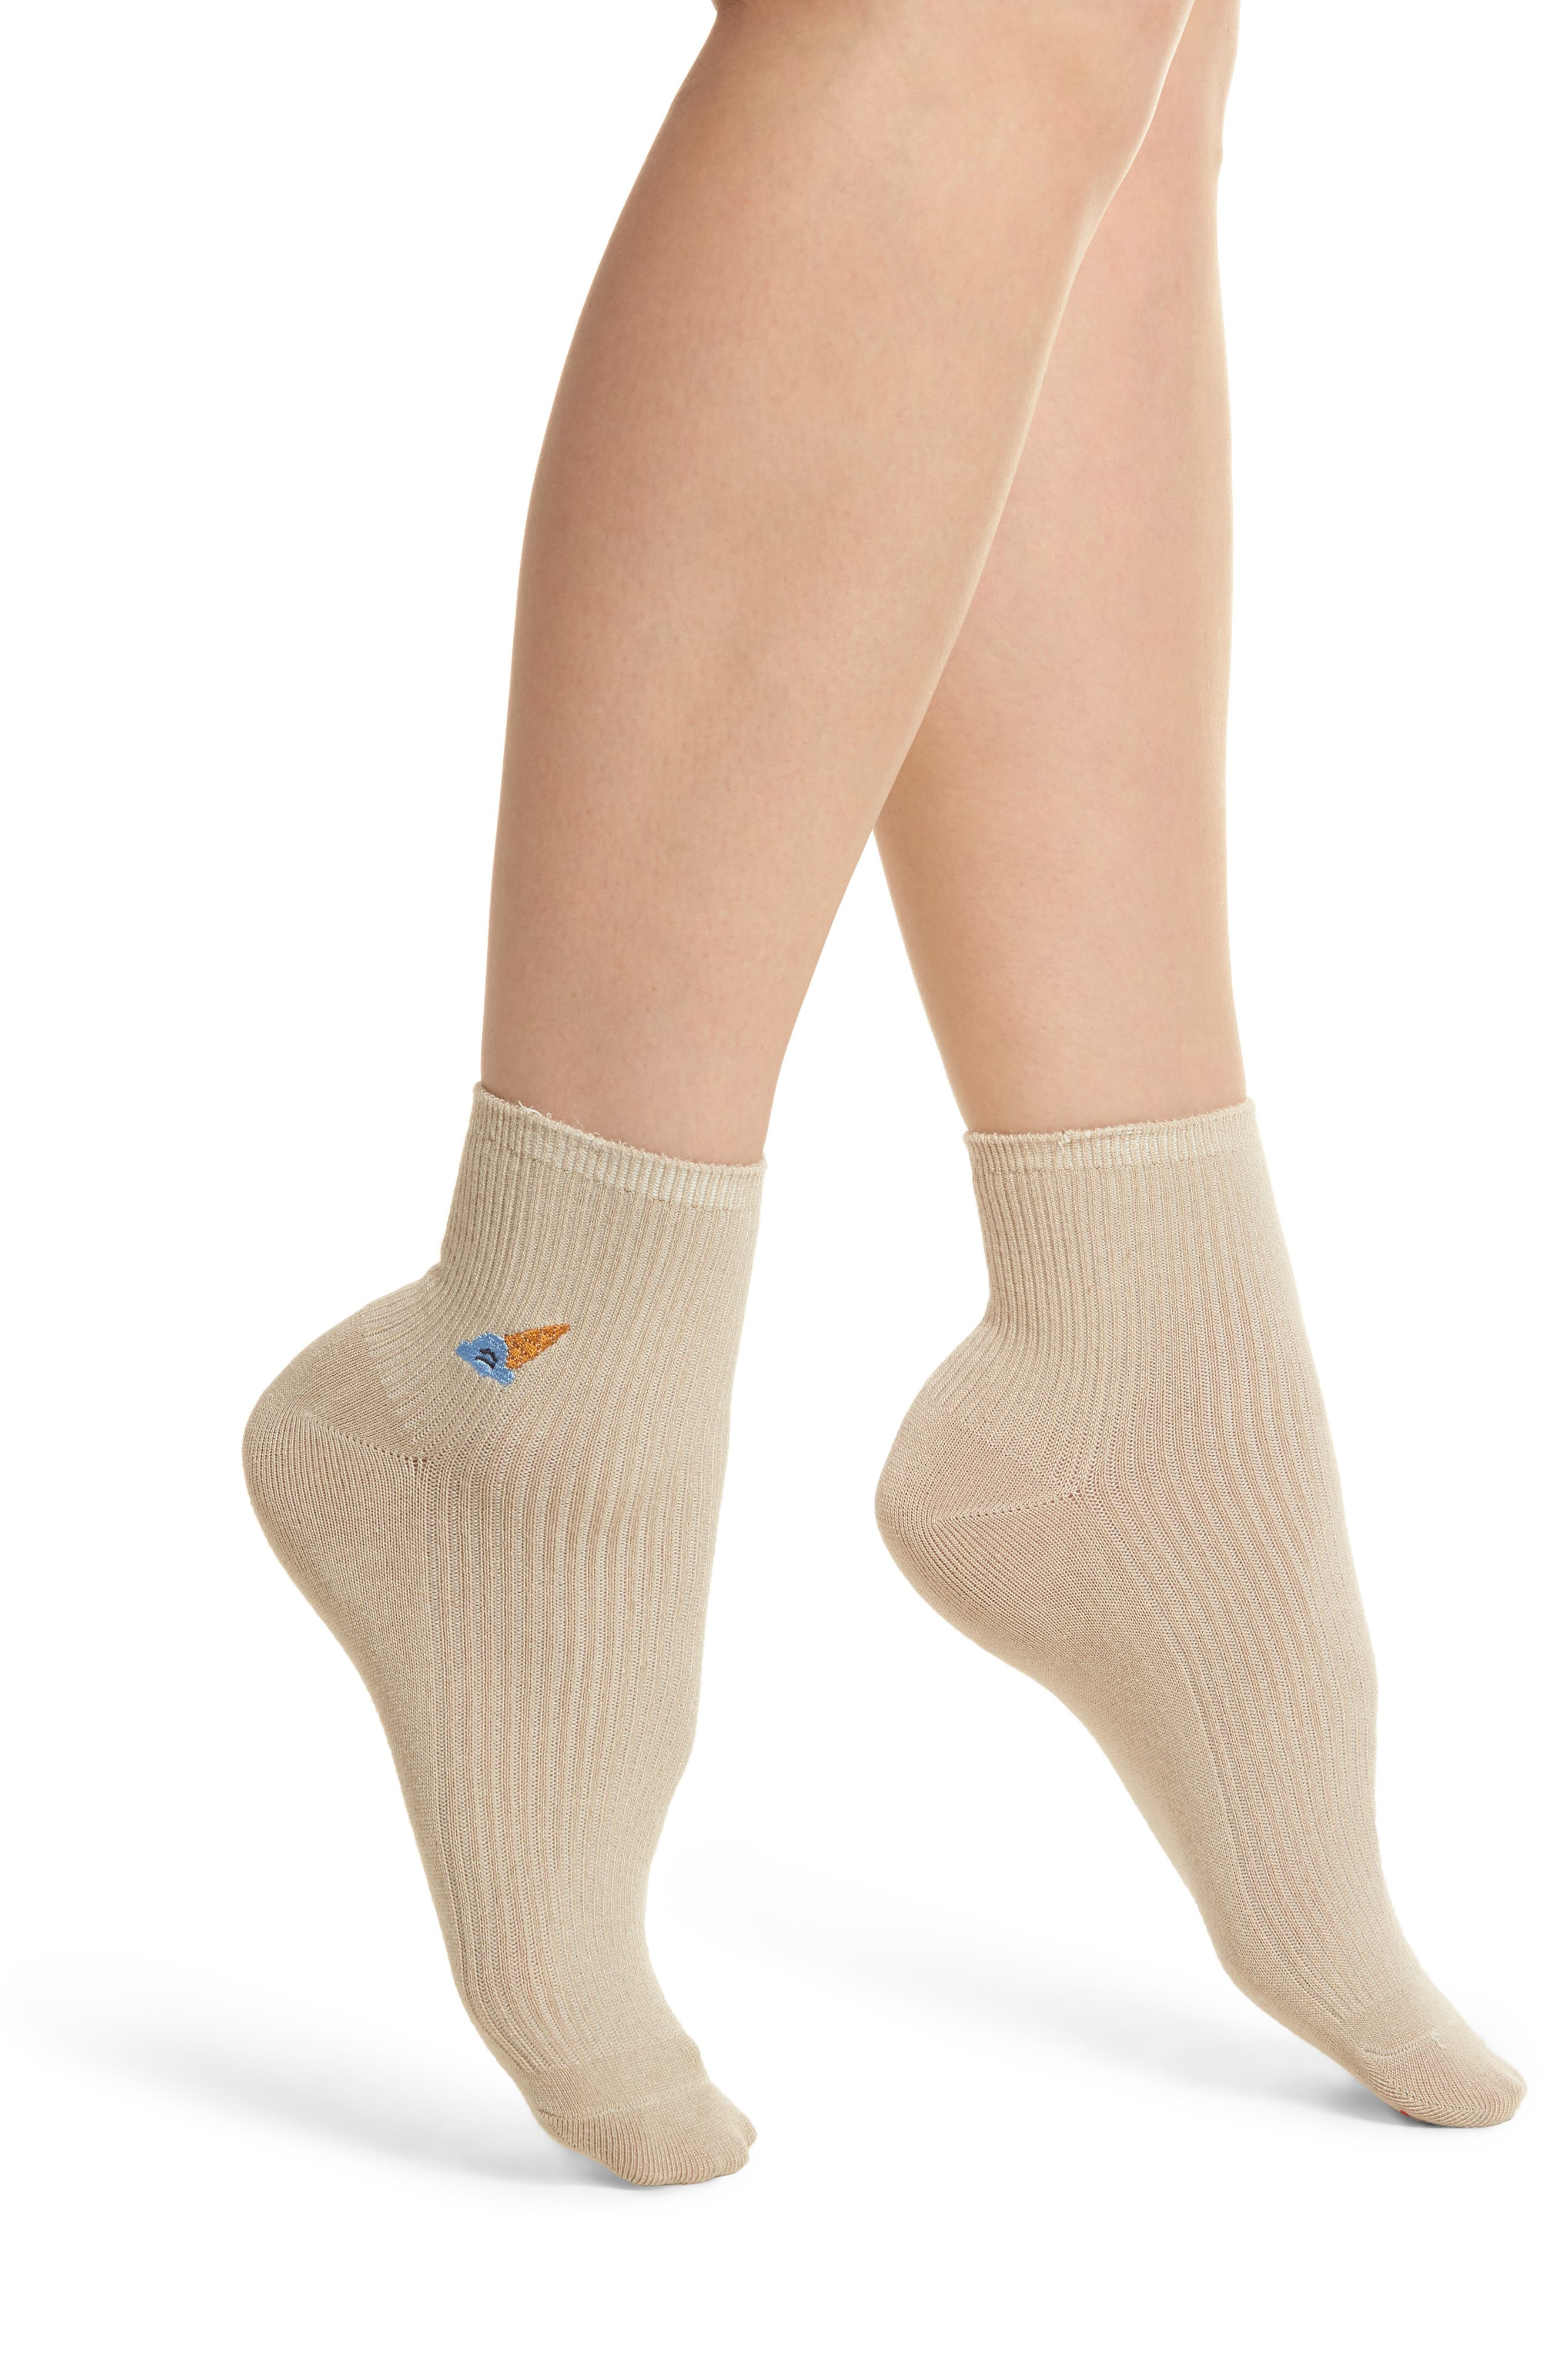 Coney Ankle Socks,                             Main thumbnail 1, color,                             250